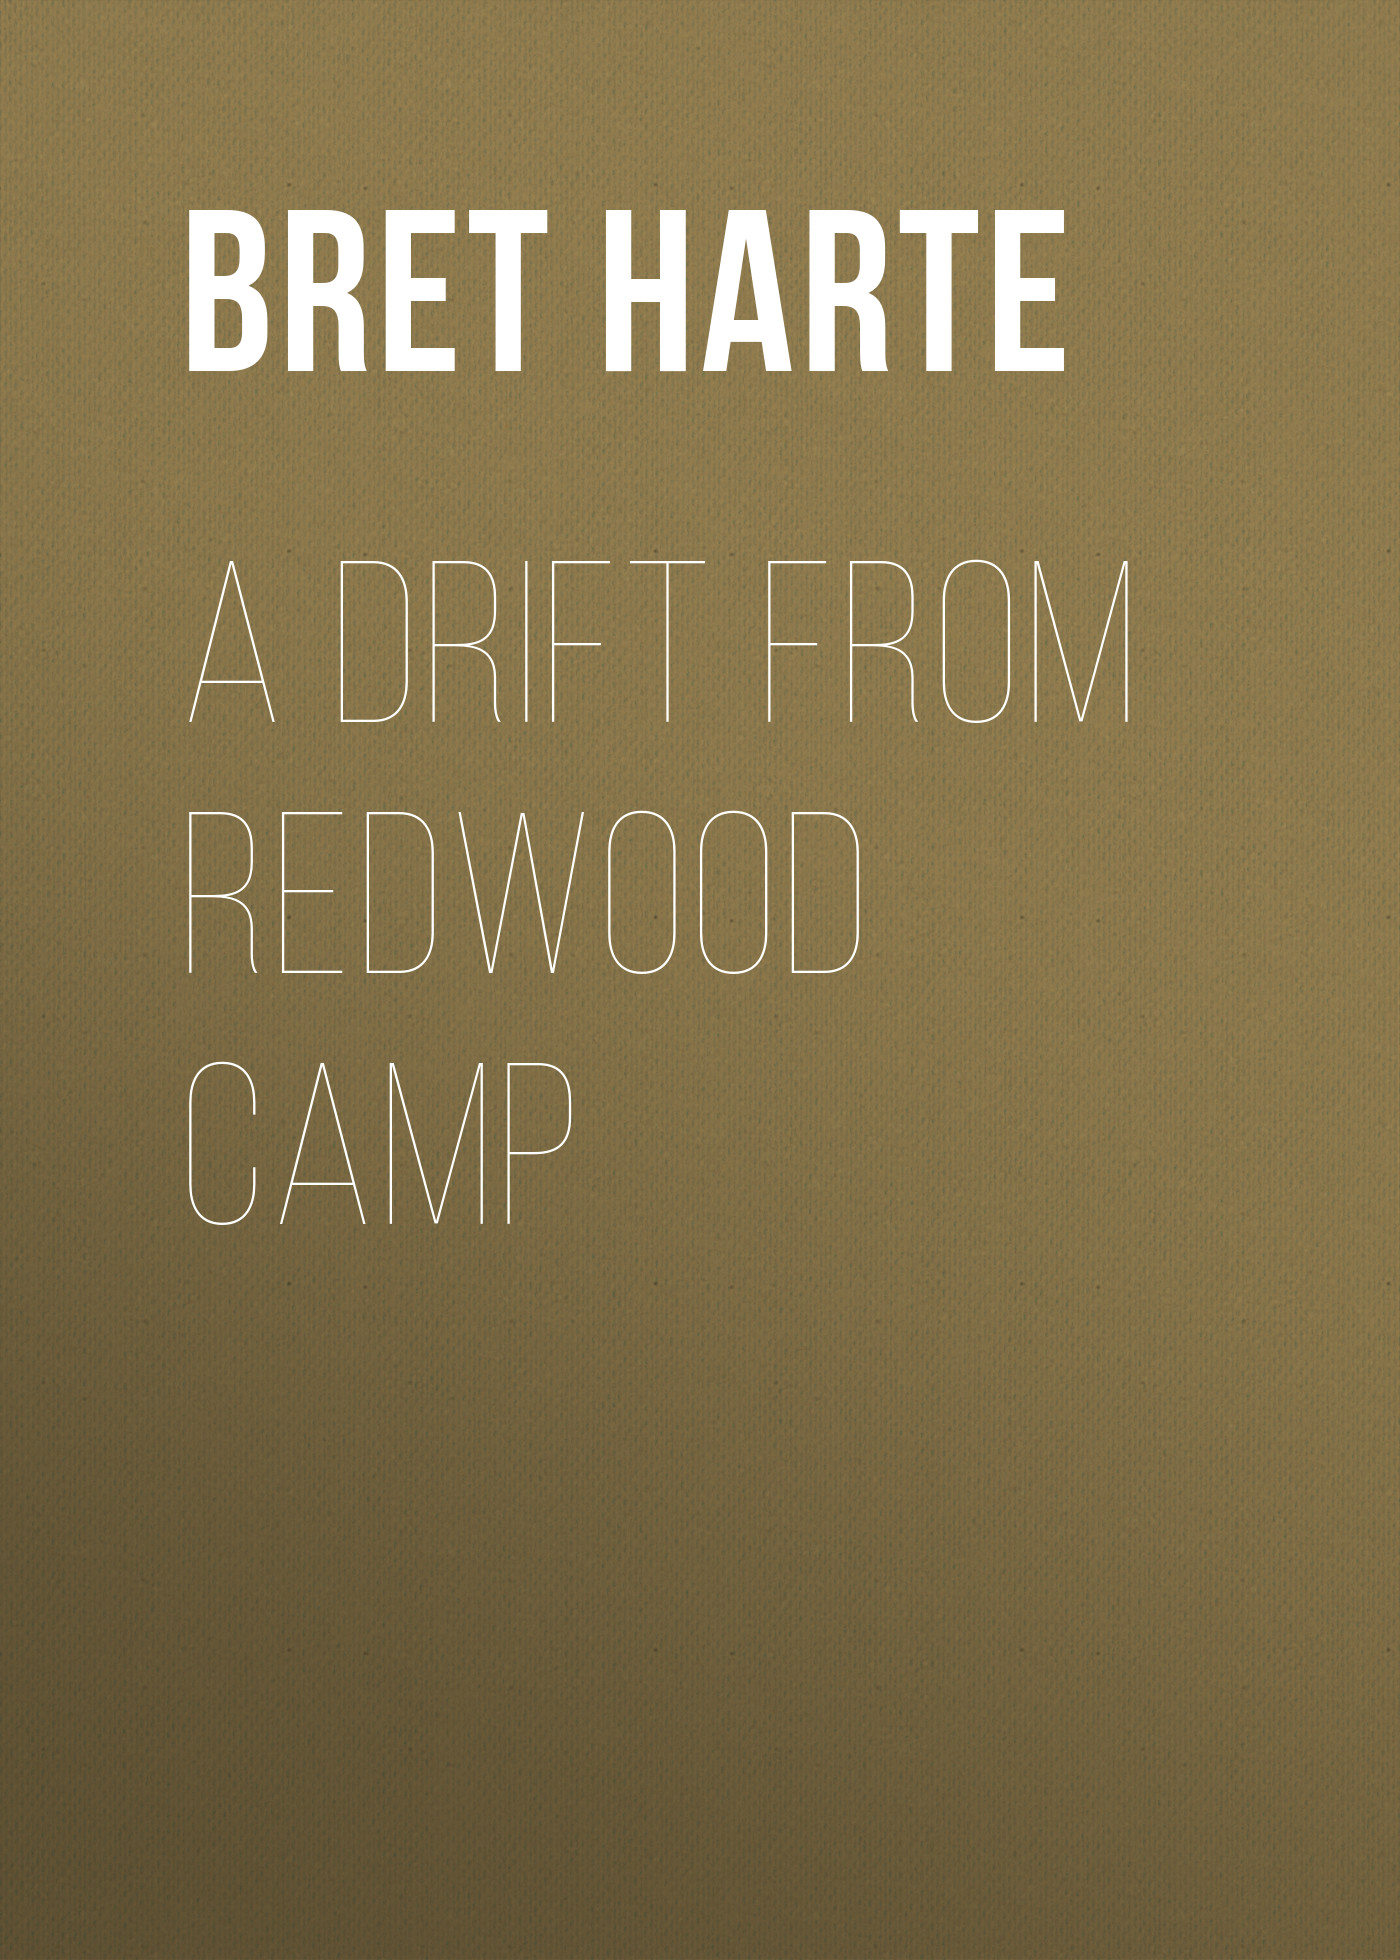 Bret Harte A Drift from Redwood Camp цена и фото